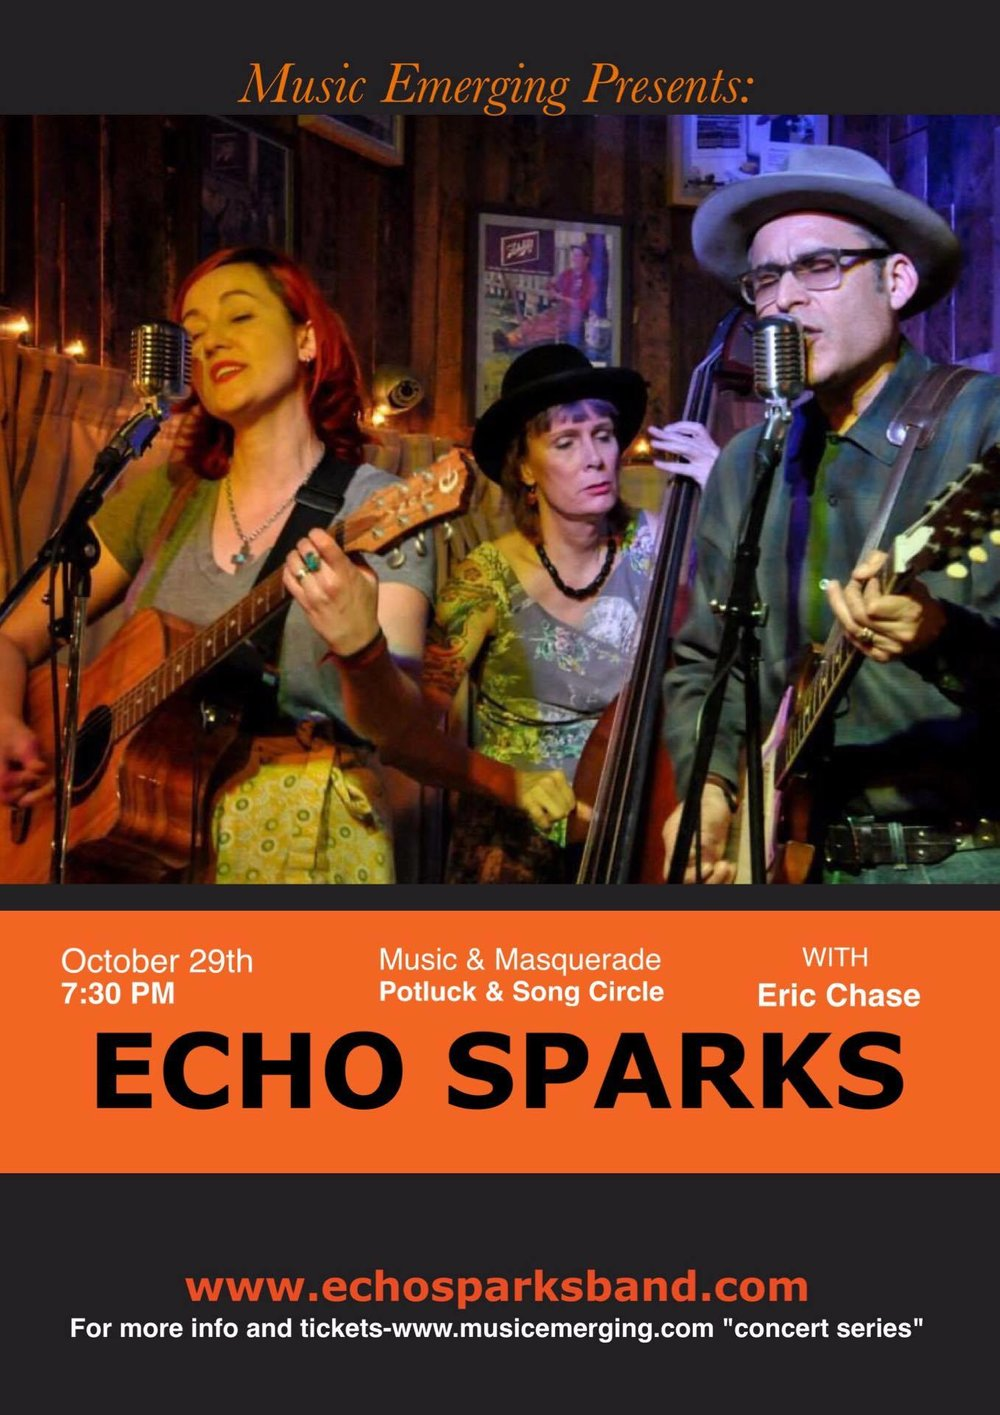 "Music Emerging presents the ""Mexifolkabilly"" of Echo Sparks-Join us for a fun potluck and masquerade house concert in Atwater Village Los Angeles, with special guest----singer songwriter Eric Chase. Concert will be BYOB and a dish; some food will be provided, but bringsomething to share if you can. Masquerade party-so wear a cool mask-preferably a half mask so we can see your beautiful face (no Trump masks please) Some masks will be available if you want one....Concert will take place at the residence of artist Robert Soffian. Song circle will follow if you would like to bring an instrument. Once you purchase your ticket, within 24 hours you will be emailed the address. Street parking is around residence with the most street parking on Tyburn Street. Any questions; email: musicemerging@gmail.com and you can visit our website at :www.musicemerging,com ""concert series""  Ticket link: MUSIC EMERGING PRESENTS: ECHO SPARKS WITH SPECIAL GUEST ERIC CHASE   More about the artists: ECHO SPARKS ""Echo Sparks is an Americana band from Orange County, California. They are inspired by the quiet back roads of California's farmlands and desolate corners, which they translate into harmonies that break hearts and tunes that move feet. They perform frequently to the delight of audiences around Southern California and beyond. Their latest album release, ""Ghost Town Girl"" has had radio play across North America and has garnered rave reviews (including two write-ups in No Depression). Echo Sparks is led by primary songwriter DA Valdez on vocals and lead guitar. Colleen Kinnick shares the lead vocal position and plays rhythm guitar. Cindy Ballreich provides support on upright bass and mandolin. The trio's wide range of influences allows them to put a refreshing perspective on roots music that is enjoyed by music fans everywhere."" ERIC CHASE By the middle of high school Eric was playing bass for a local band called the Gross National Product. It was this band that gave him his first taste of the exhilaration only successful performers know, as the GNP broke out of South Pasadena, California and began playing in nightclubs around the Los Angeles area. Recollections among the band members vary somewhat, it being the 60's and all. After two years in the GNP, the quintessential ""Opening Act"", the United States Selective Service System led Eric to a fateful decision, to quit the band, and to remain instead a full-time college student in order to postpone his tour of duty, which he is still actively doing. Somewhat broken-hearted at seeing his performer's dream die too soon, he turned to songwriting. He specialized, at the outset, in socially relevant songs of protest, outrage, and such. But a hopeless romantic will not remain outraged indefinitely, and love crept into the growing stack of songs soon enough. For the next forty years Eric continued to write songs, forgoing live performance almost entirely. That, dear readers, is now changing. Having achieved everything he could as a working stiff, Eric has undertaken this new journey, and he welcomes you to join him. Please enjoy the songs from the Forty Years sessions, recorded in 2007-2008, and most especially, the new release In Grace Again. Eric hopes to see you on the road someday soon!"